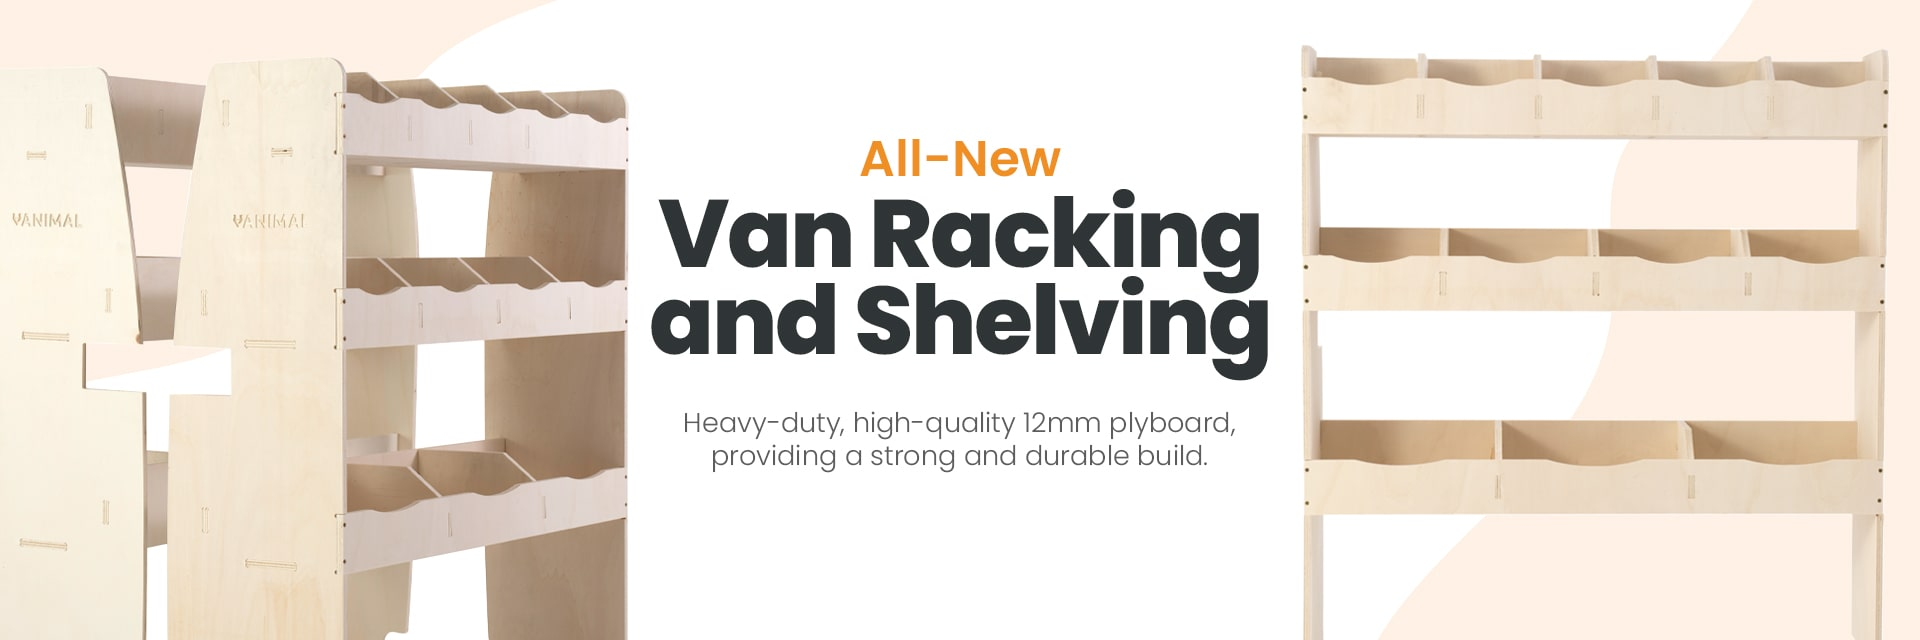 Van racking and shelving solutions